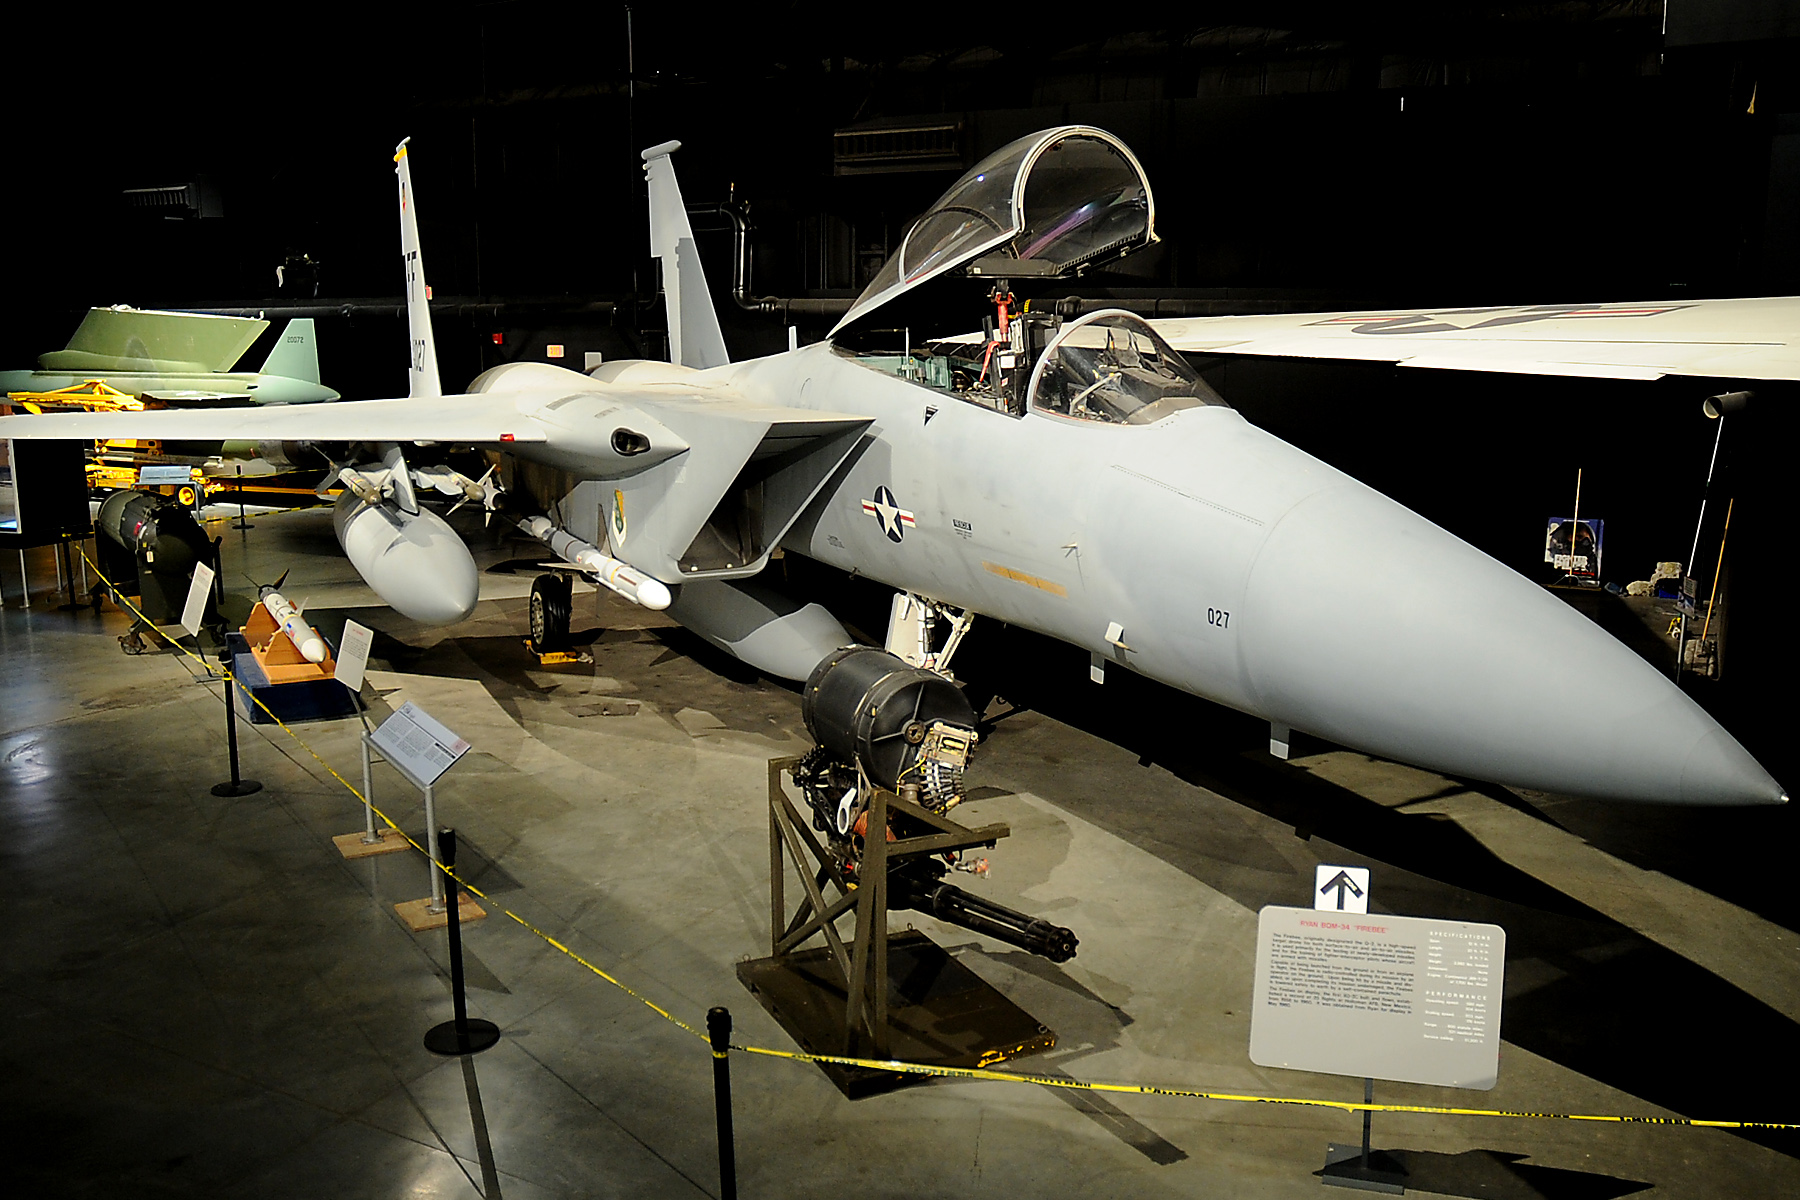 mcdonnell douglas f 15a eagle national museum of the us air force display. Black Bedroom Furniture Sets. Home Design Ideas